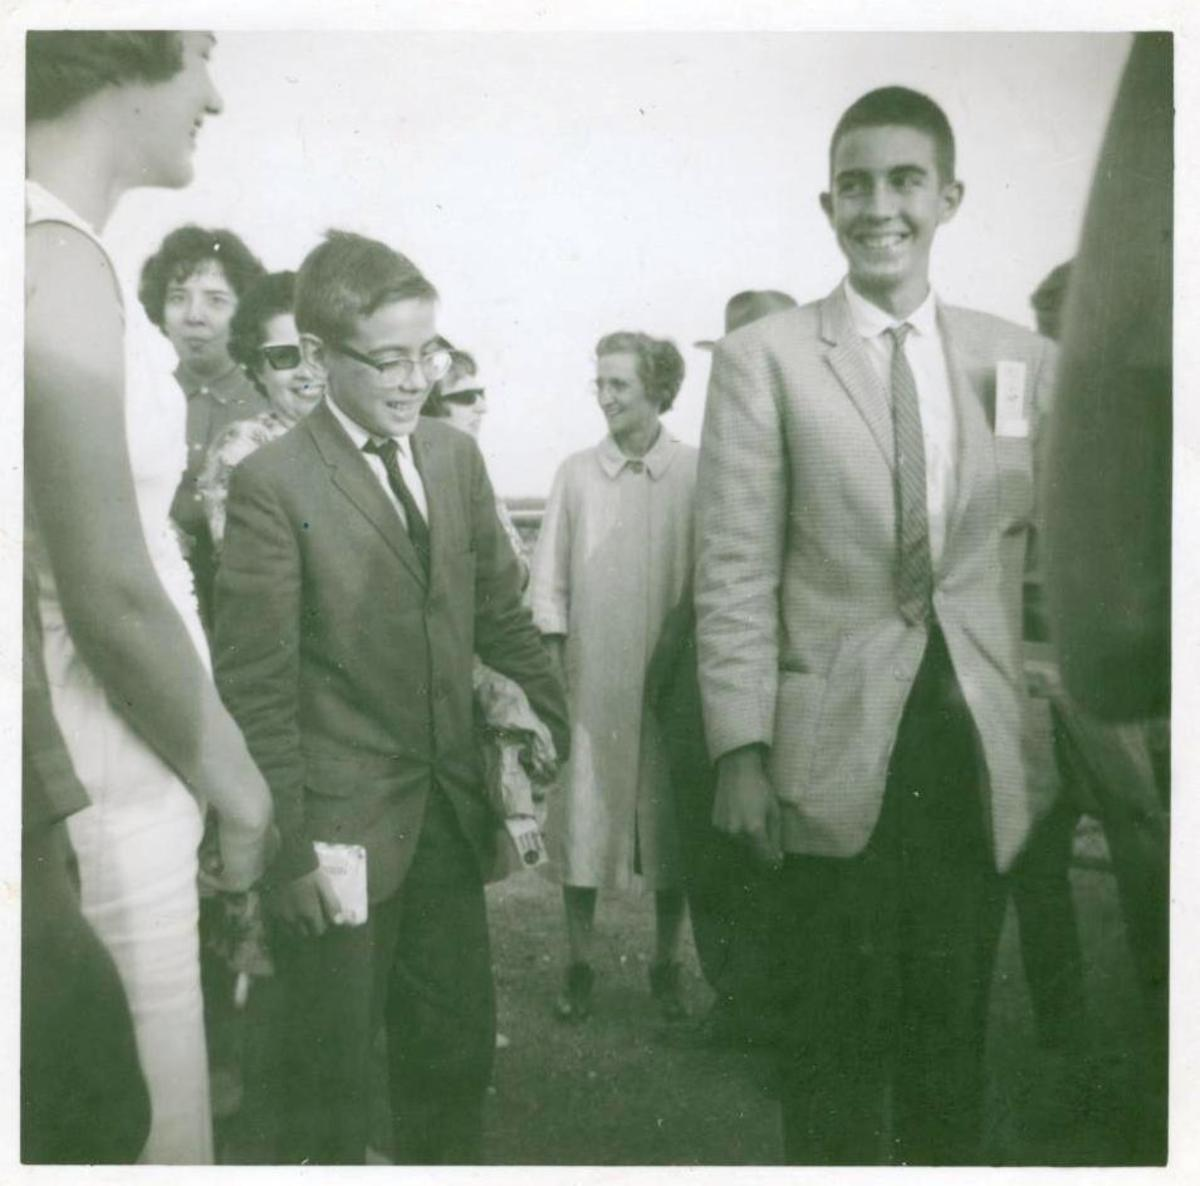 Carlos and Tony arriving in Bloomington, Illinois, circa 1963.